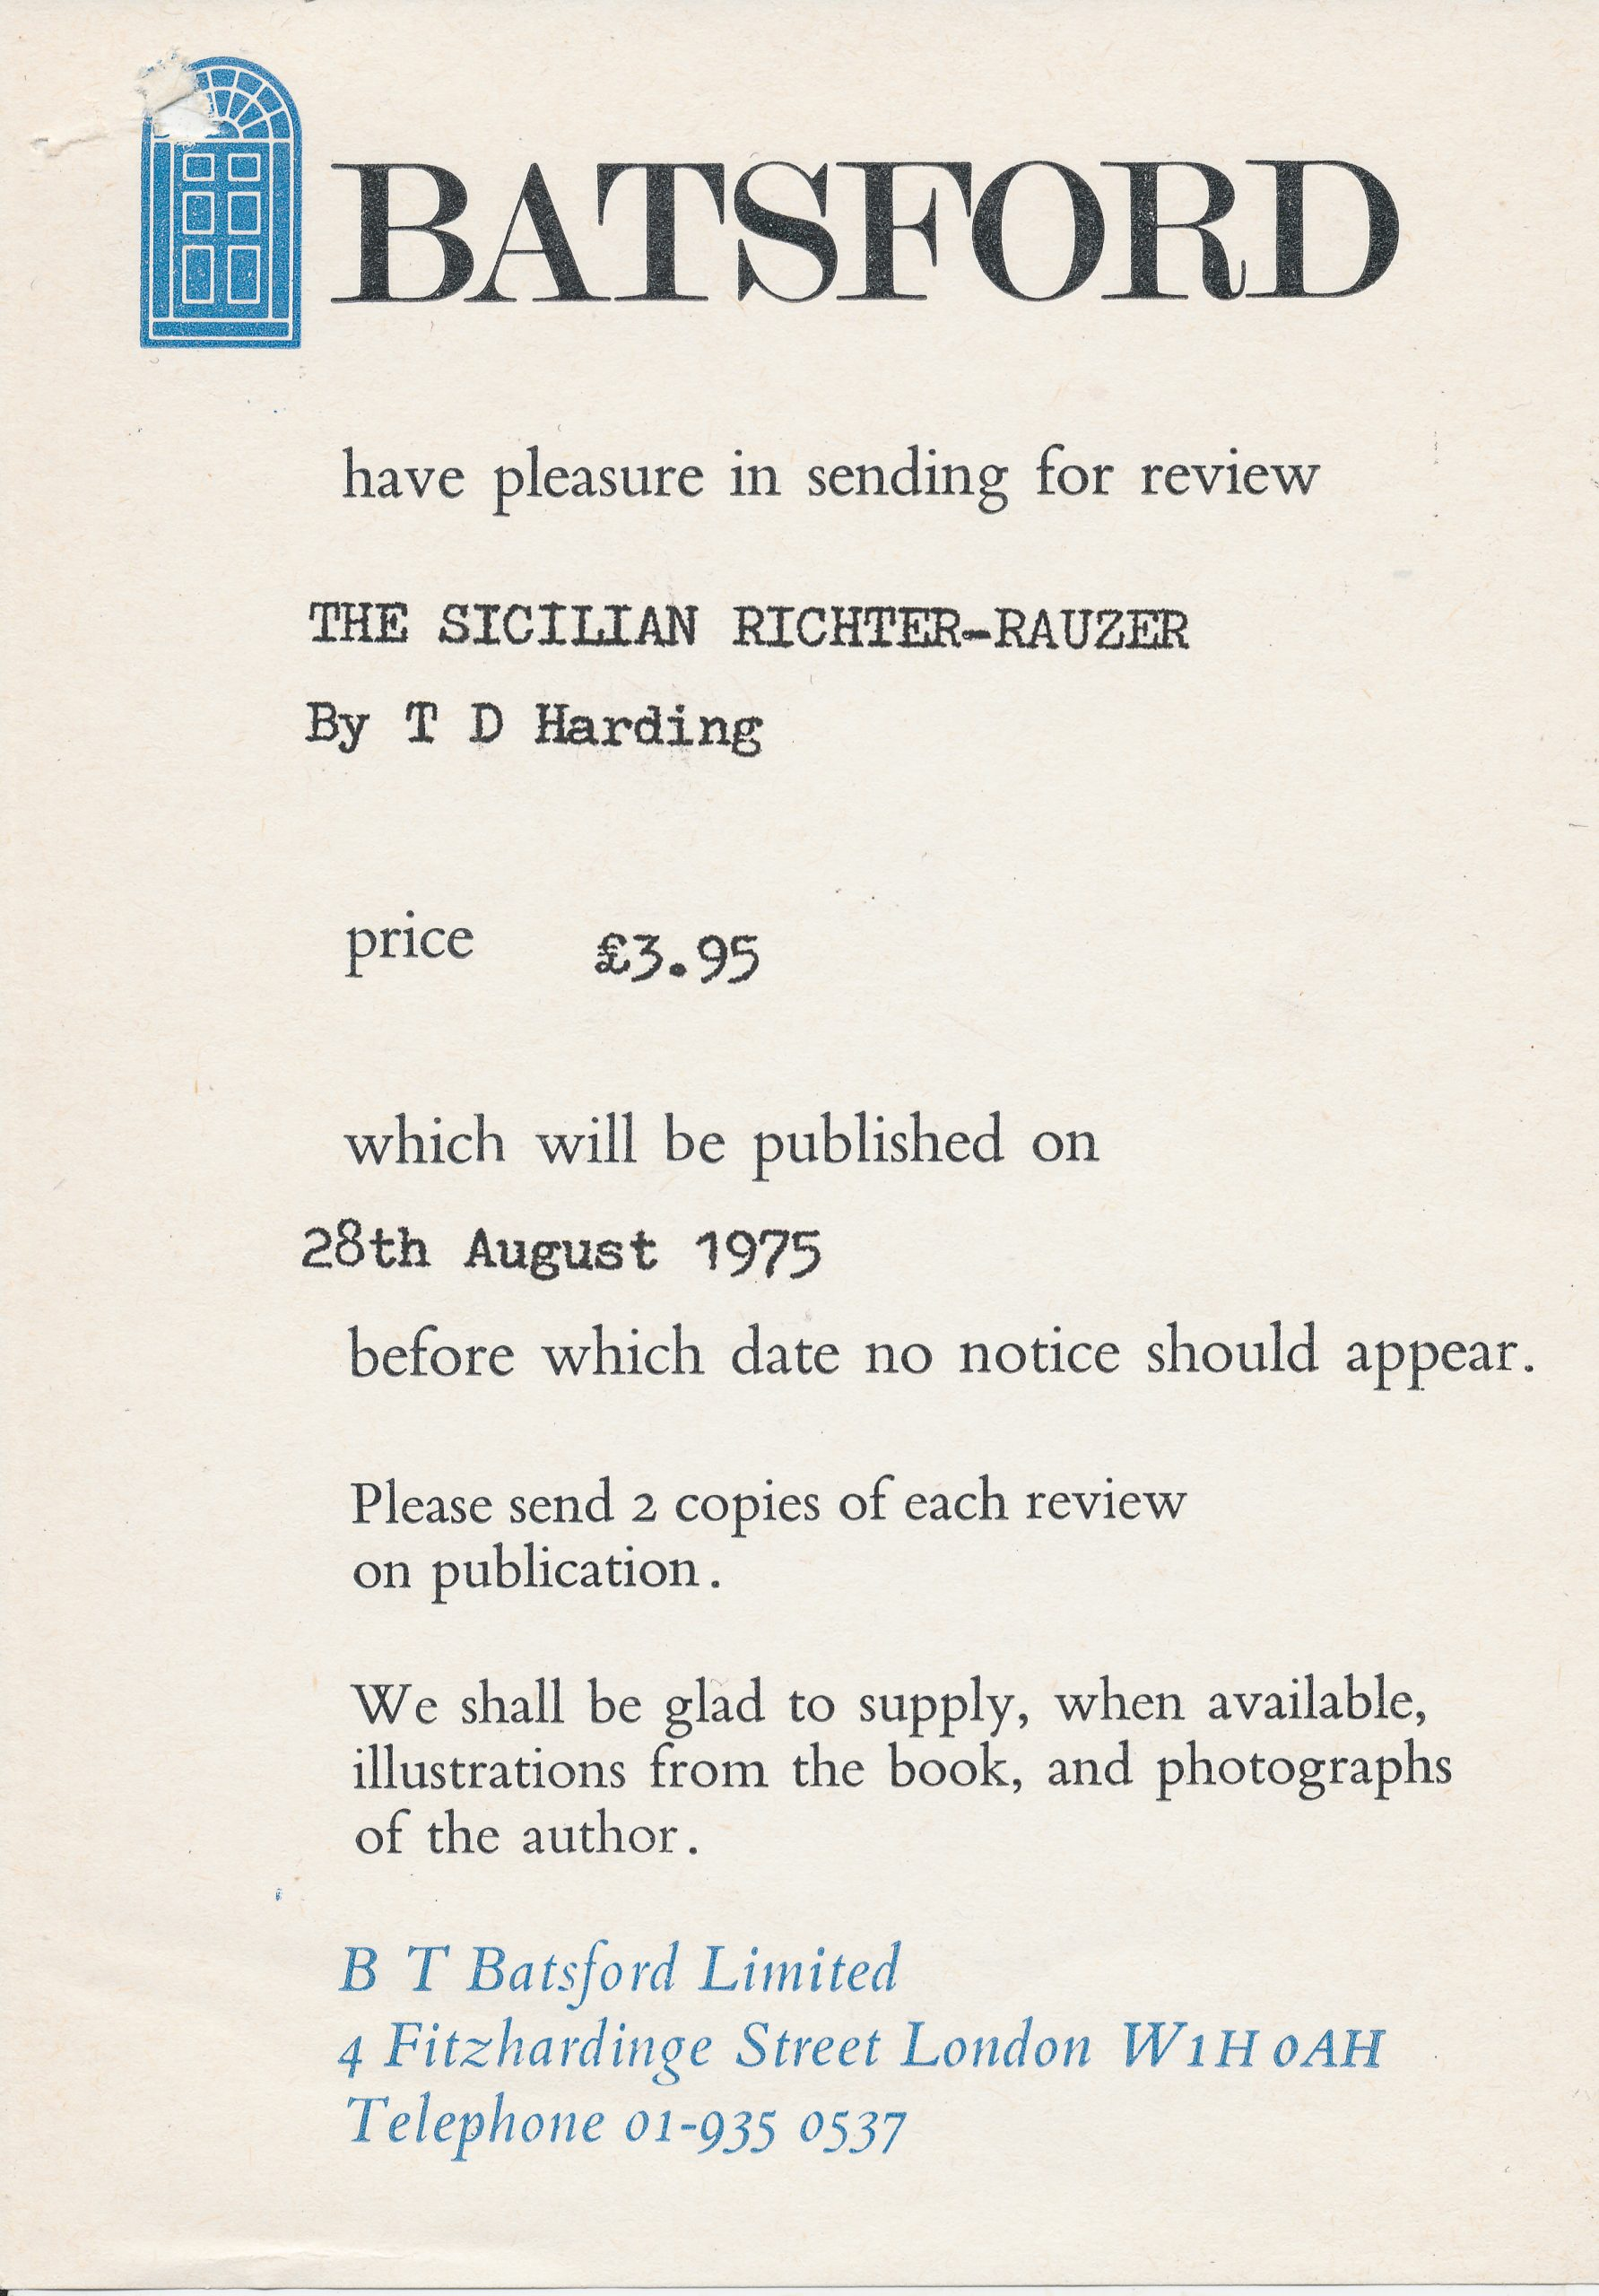 Review Notice for The Sicilian Richter-Rauzer, TD Hardign and PR Markland, Batsford, 975, ISBN 0 7134 2979 8